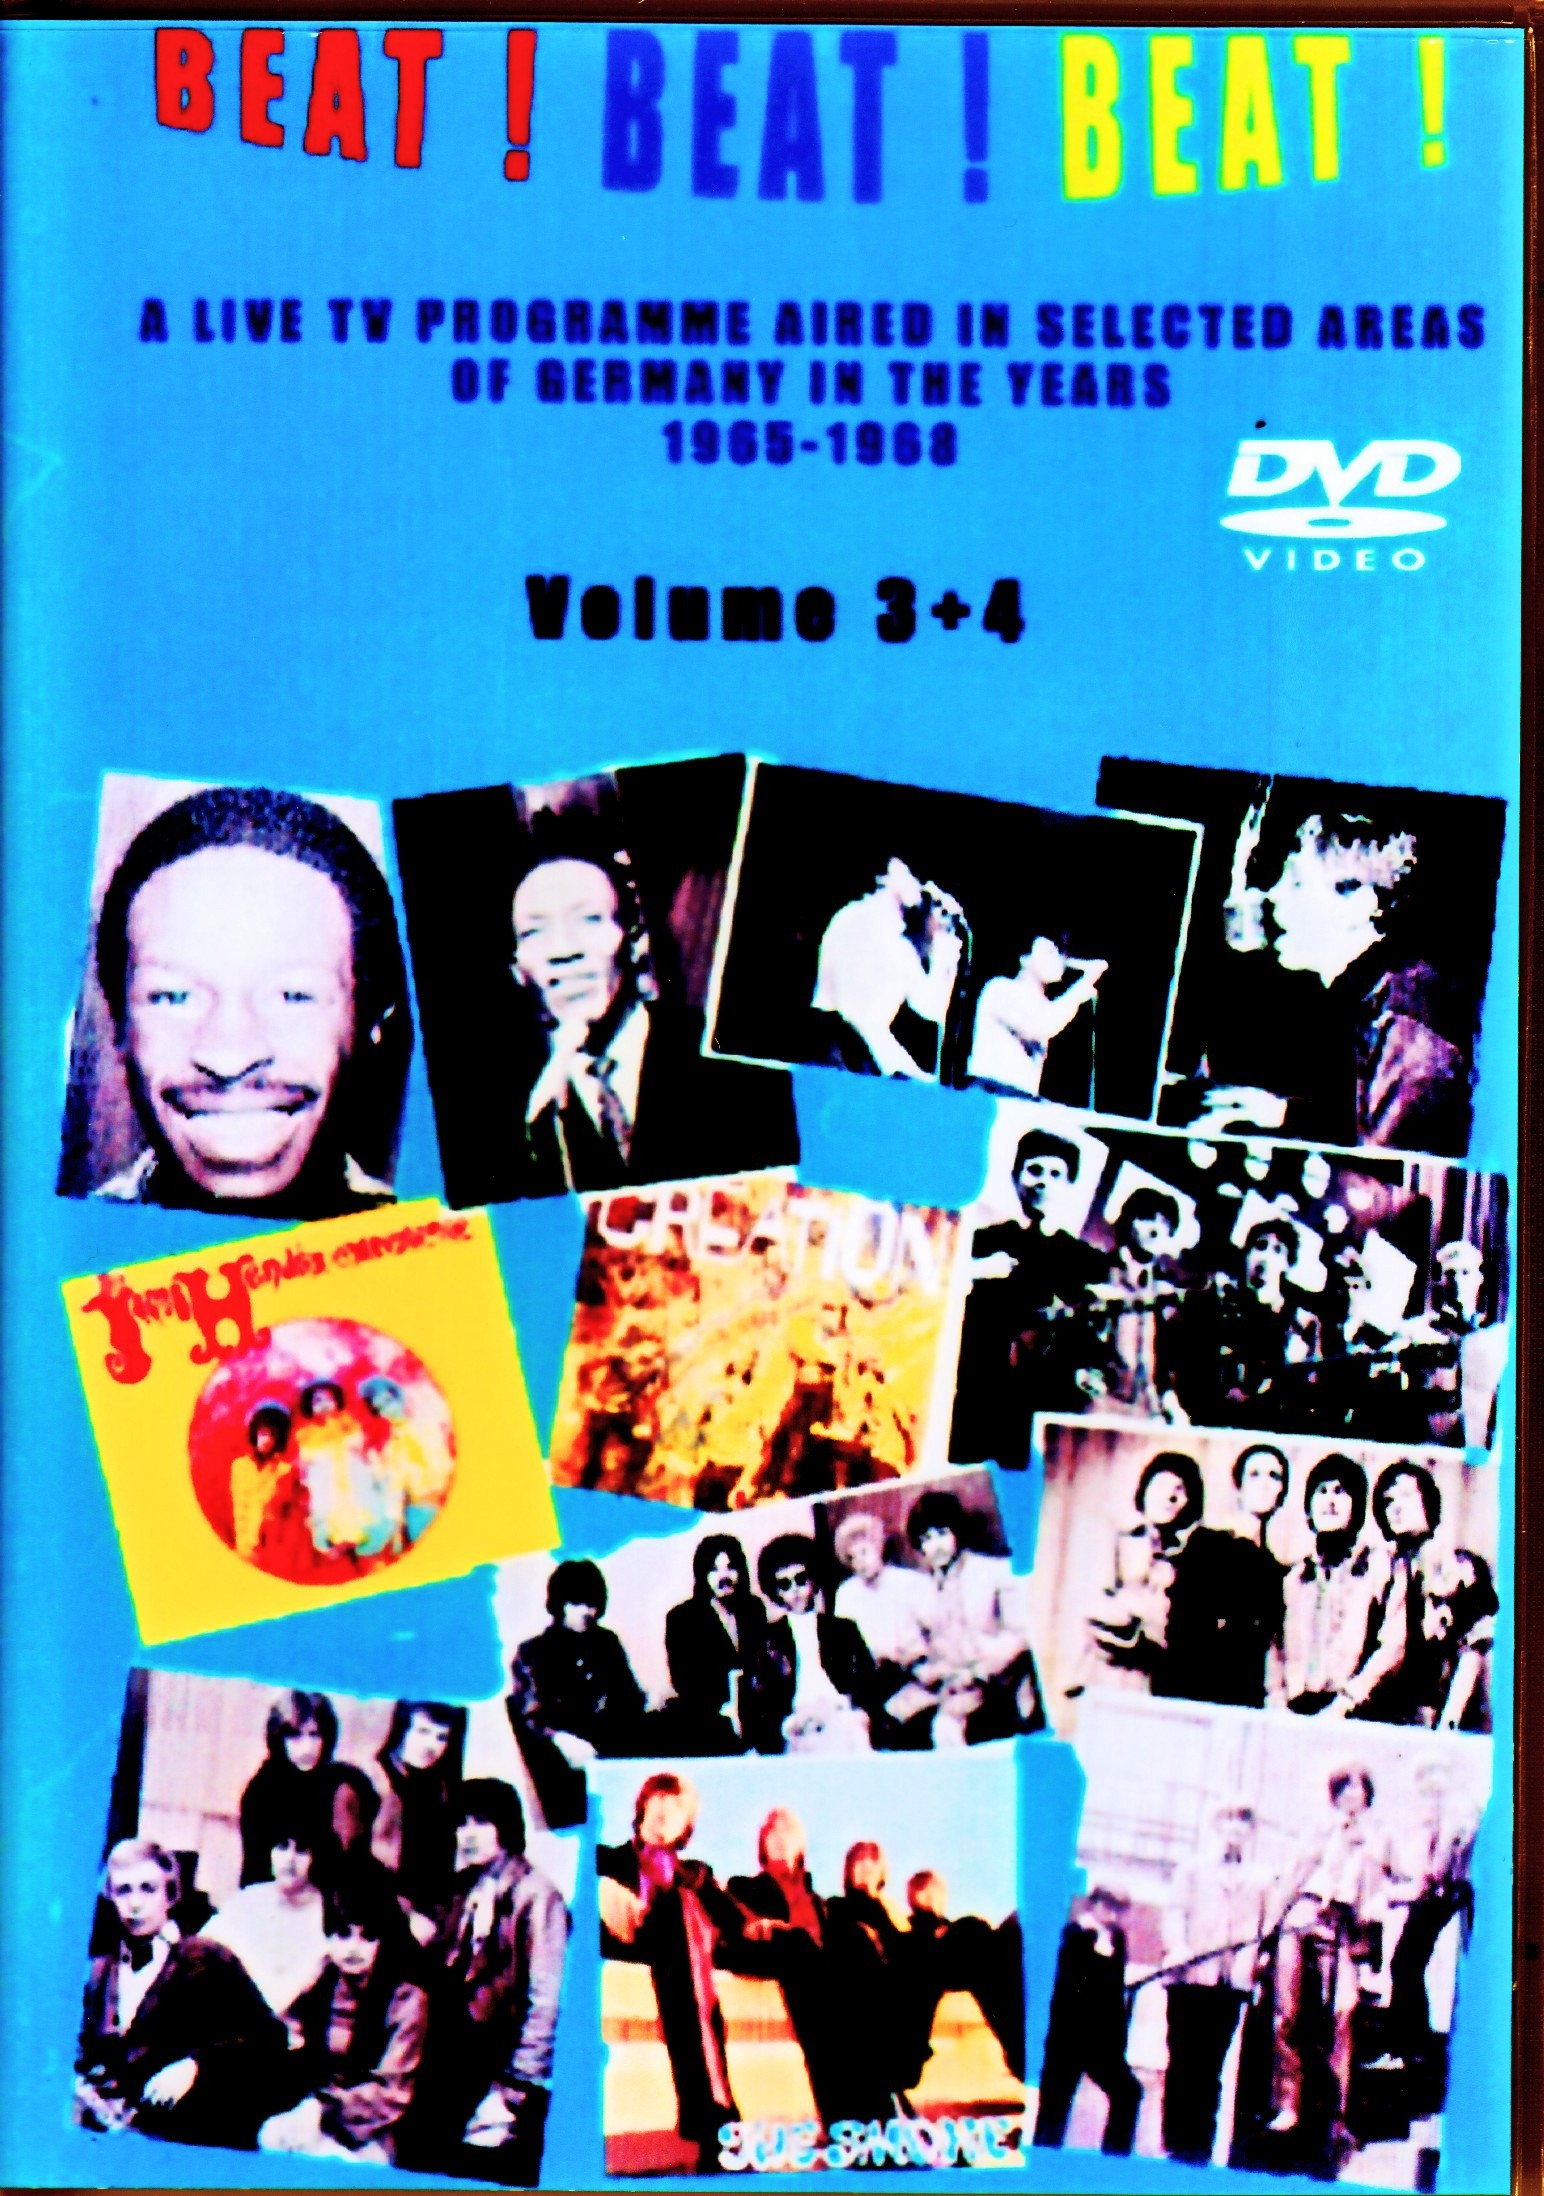 Various Artists Sam & Dave,Move,Hollies,Jimi Hendrix,Yardbirds/Germany TV Program 1965-1968 Vol.3+4